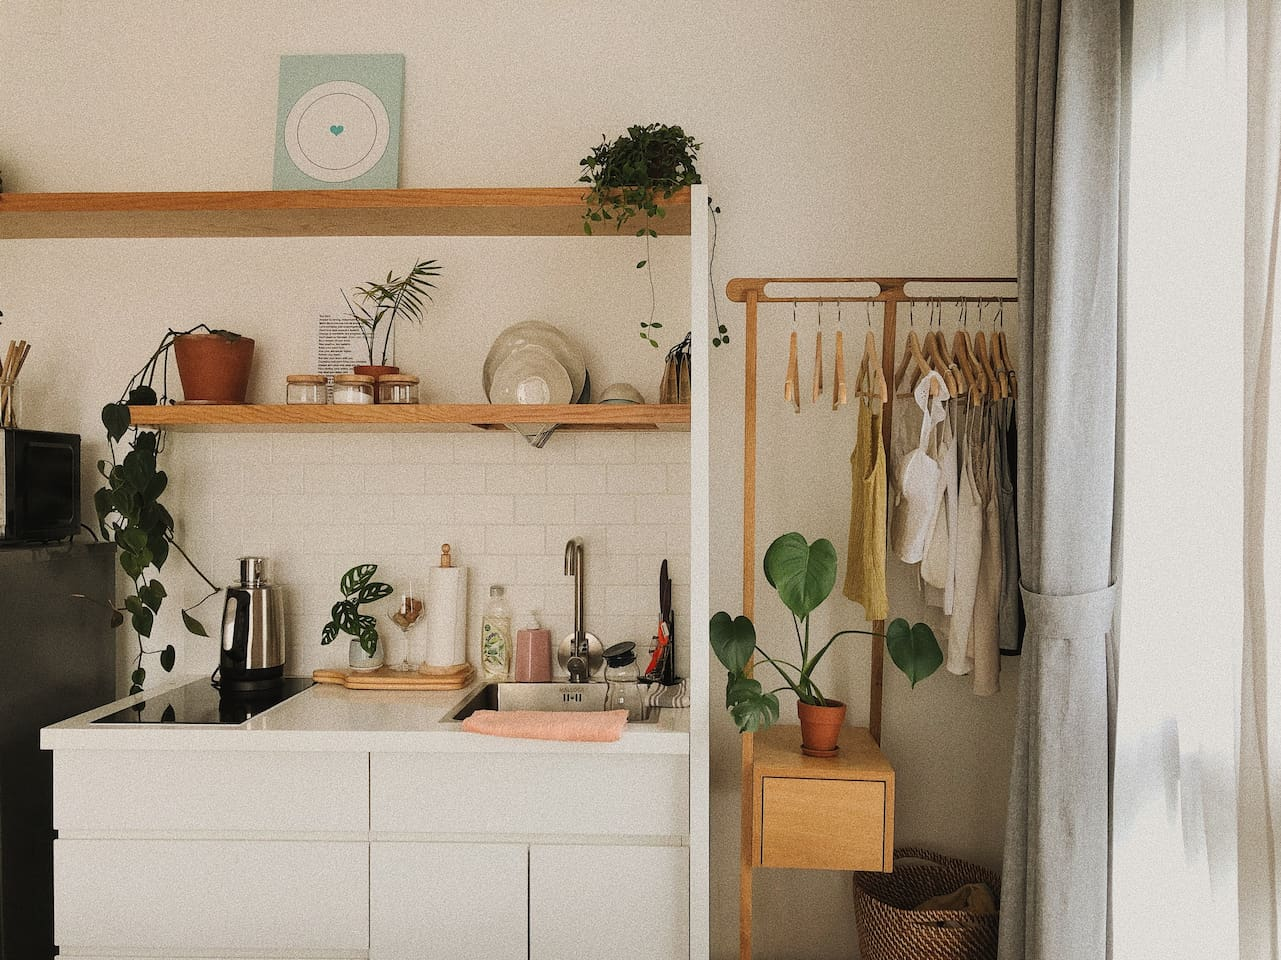 Don't worry, our kitchen is stocked with utensils, plants, and plenty of light.